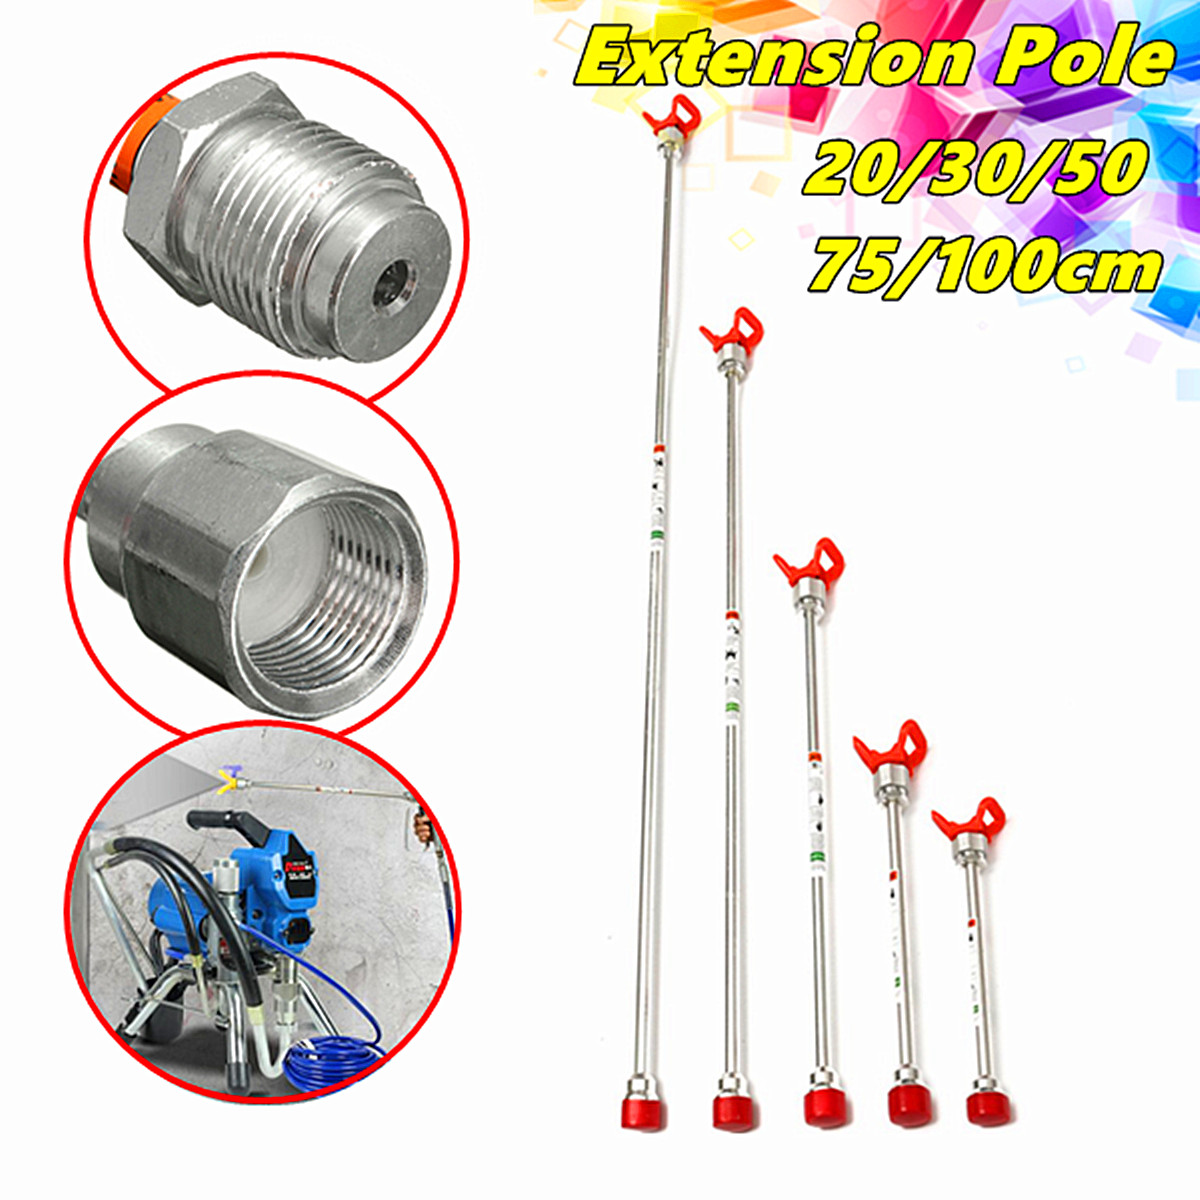 Universal 20 inch Airless Paint Sprayer Extension Pole With Nozzle Guard NEW